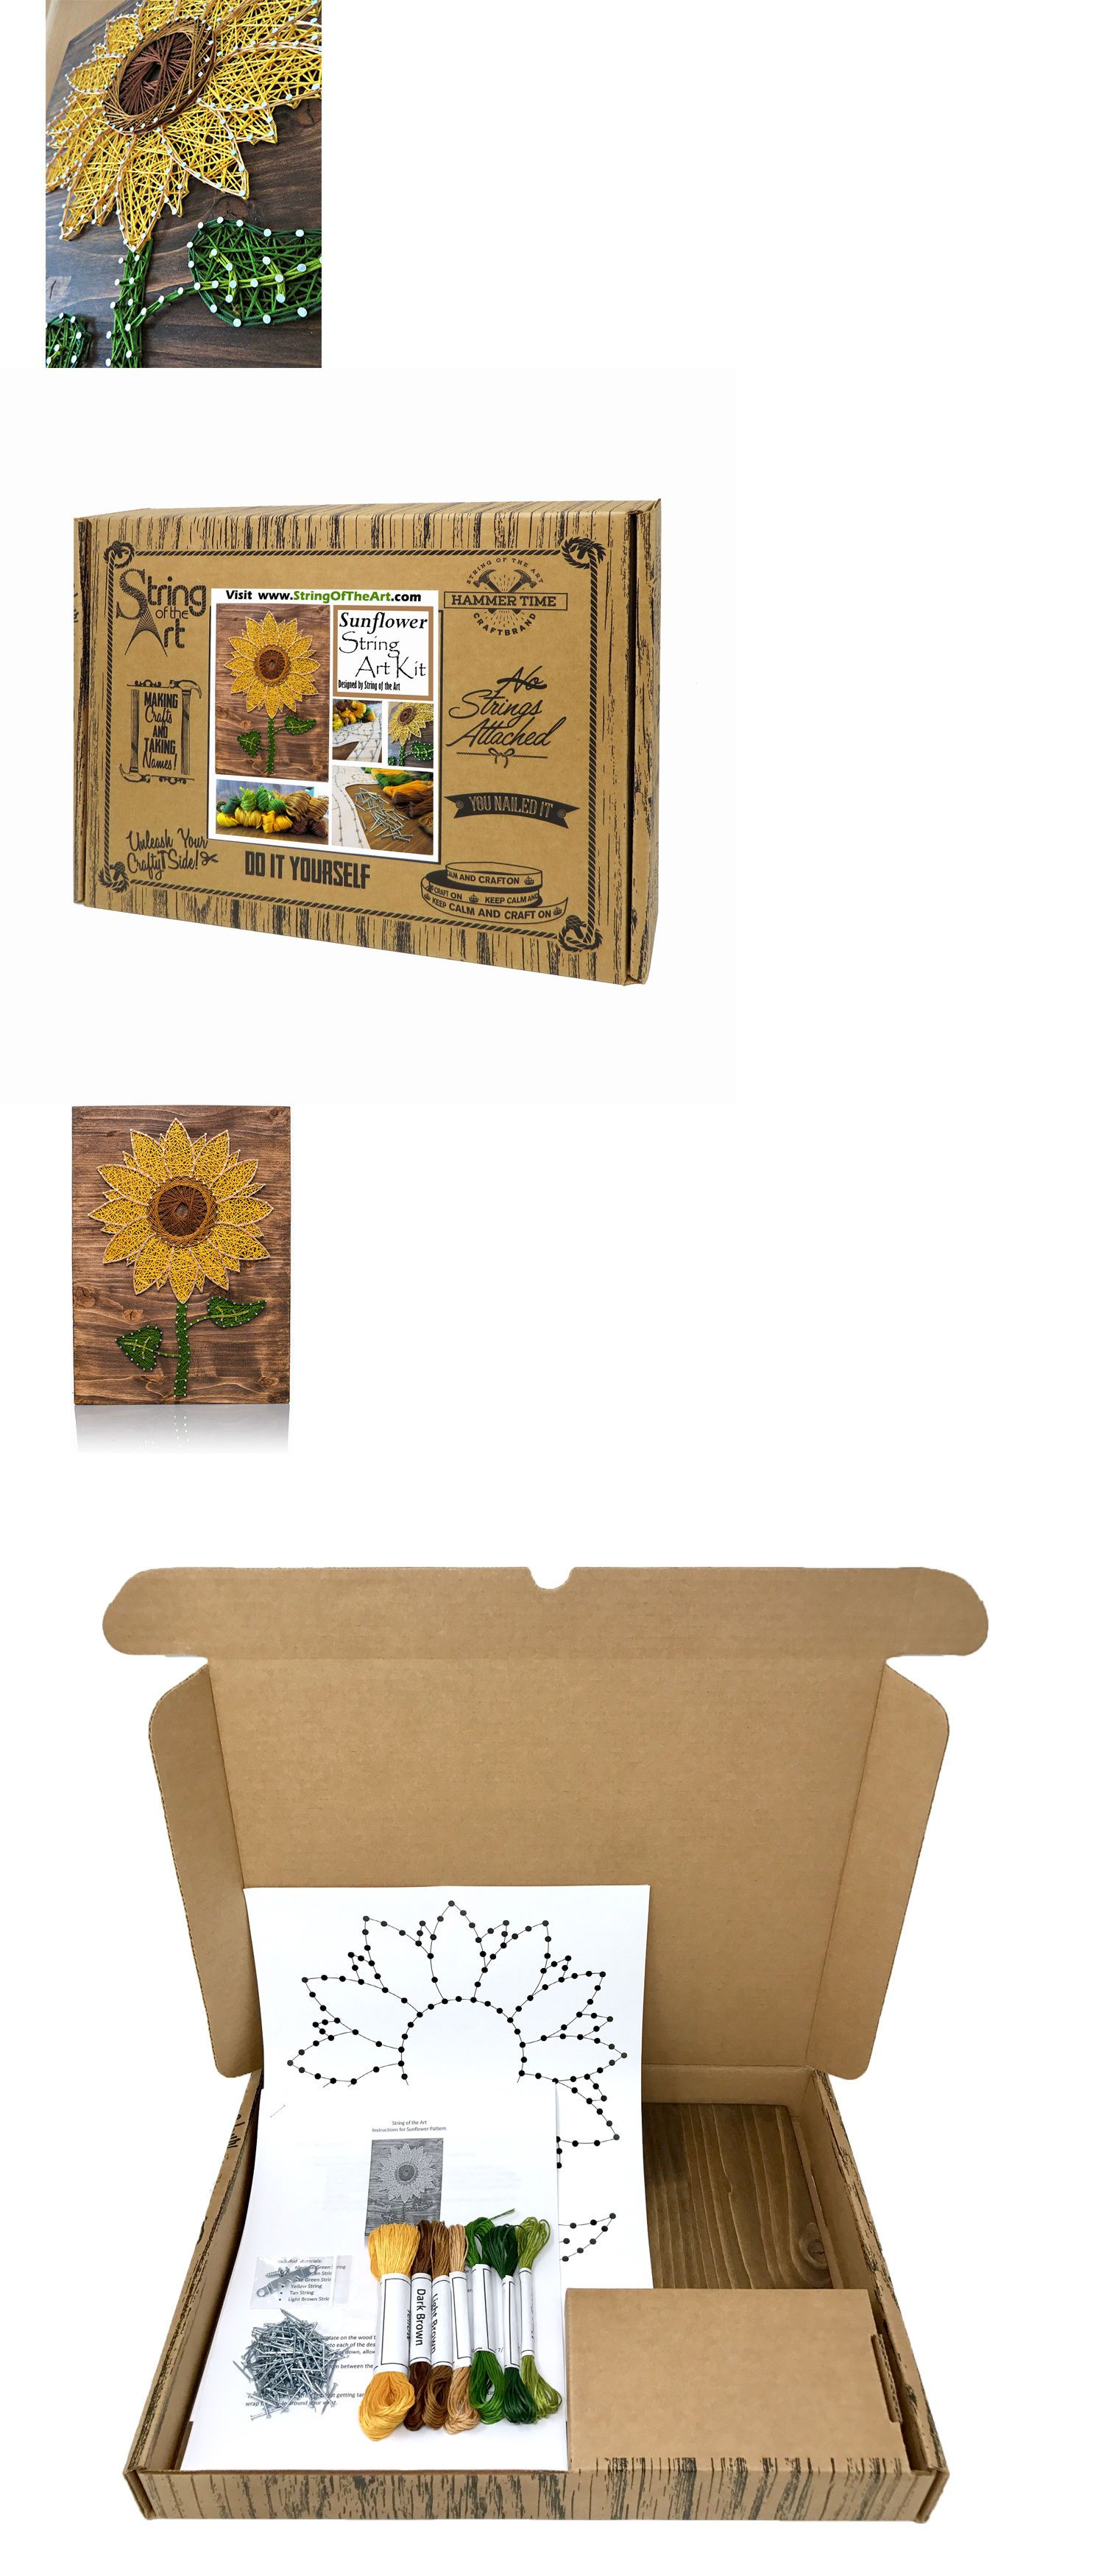 Wall d cor and tatouage 75575 sunflower string art kit sunflower wall d cor and tatouage 75575 sunflower string art kit sunflower crafts adult solutioingenieria Image collections